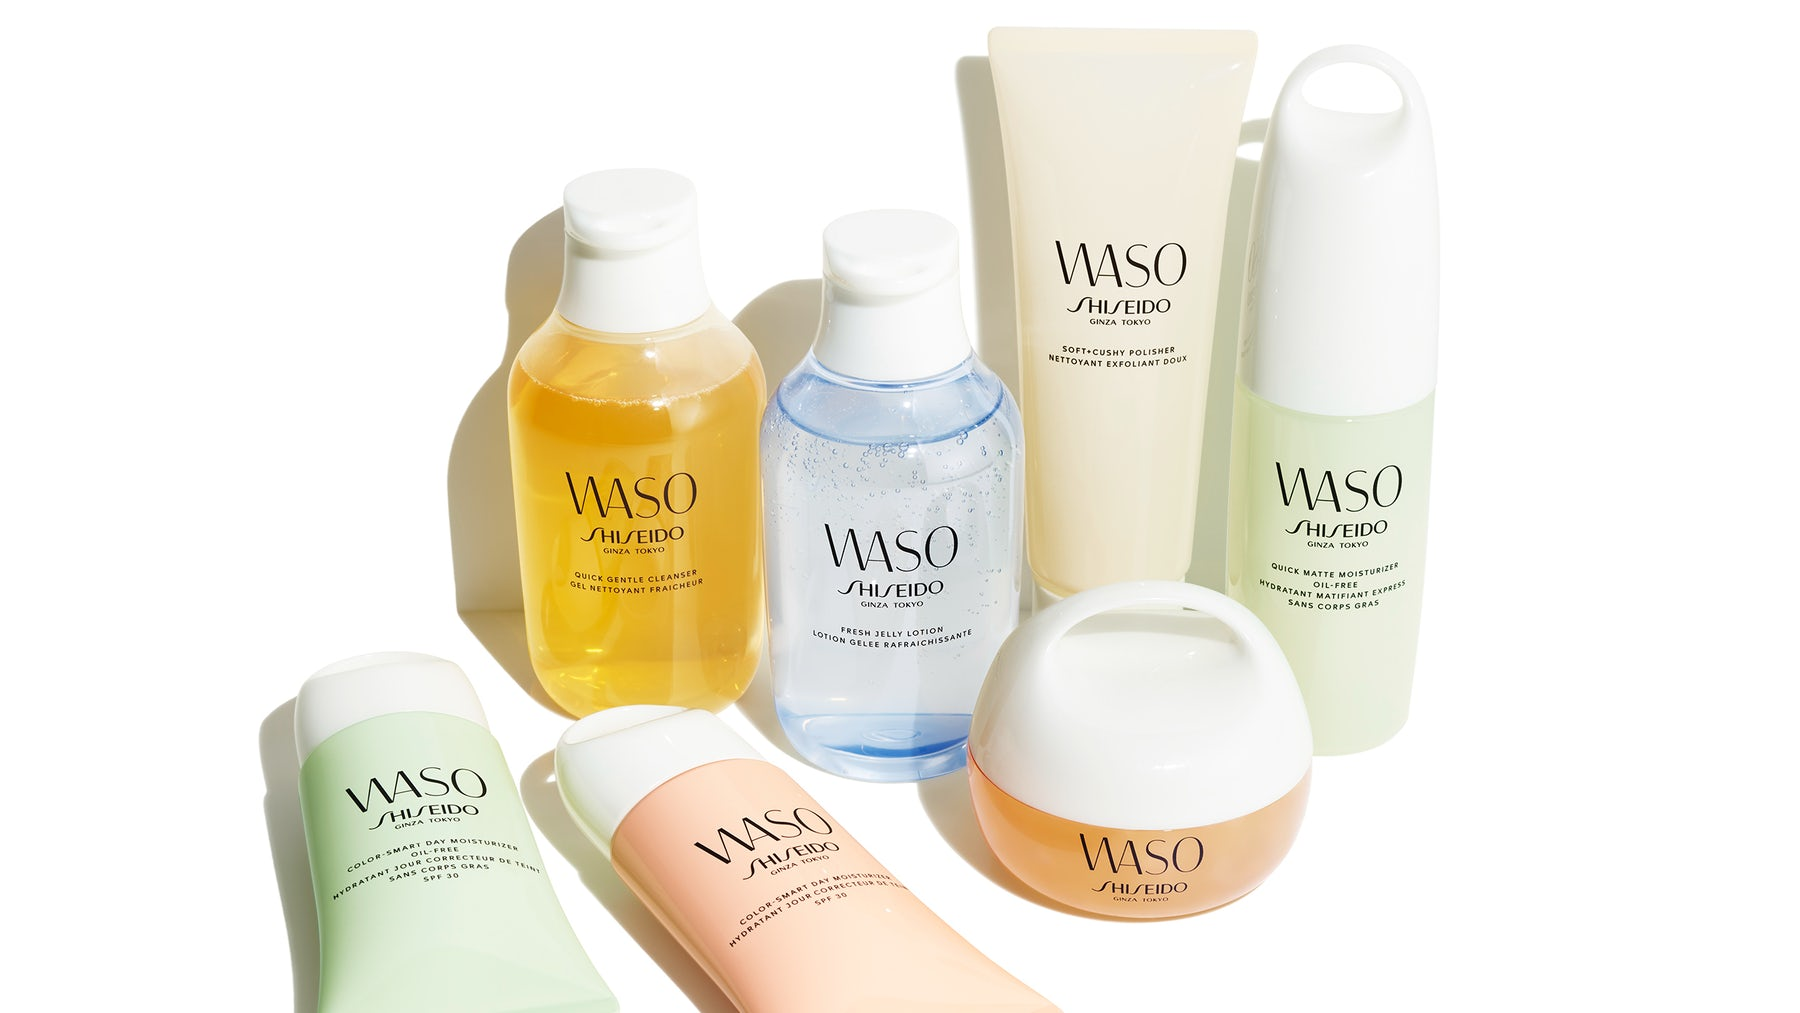 Waso products. Shiseido.